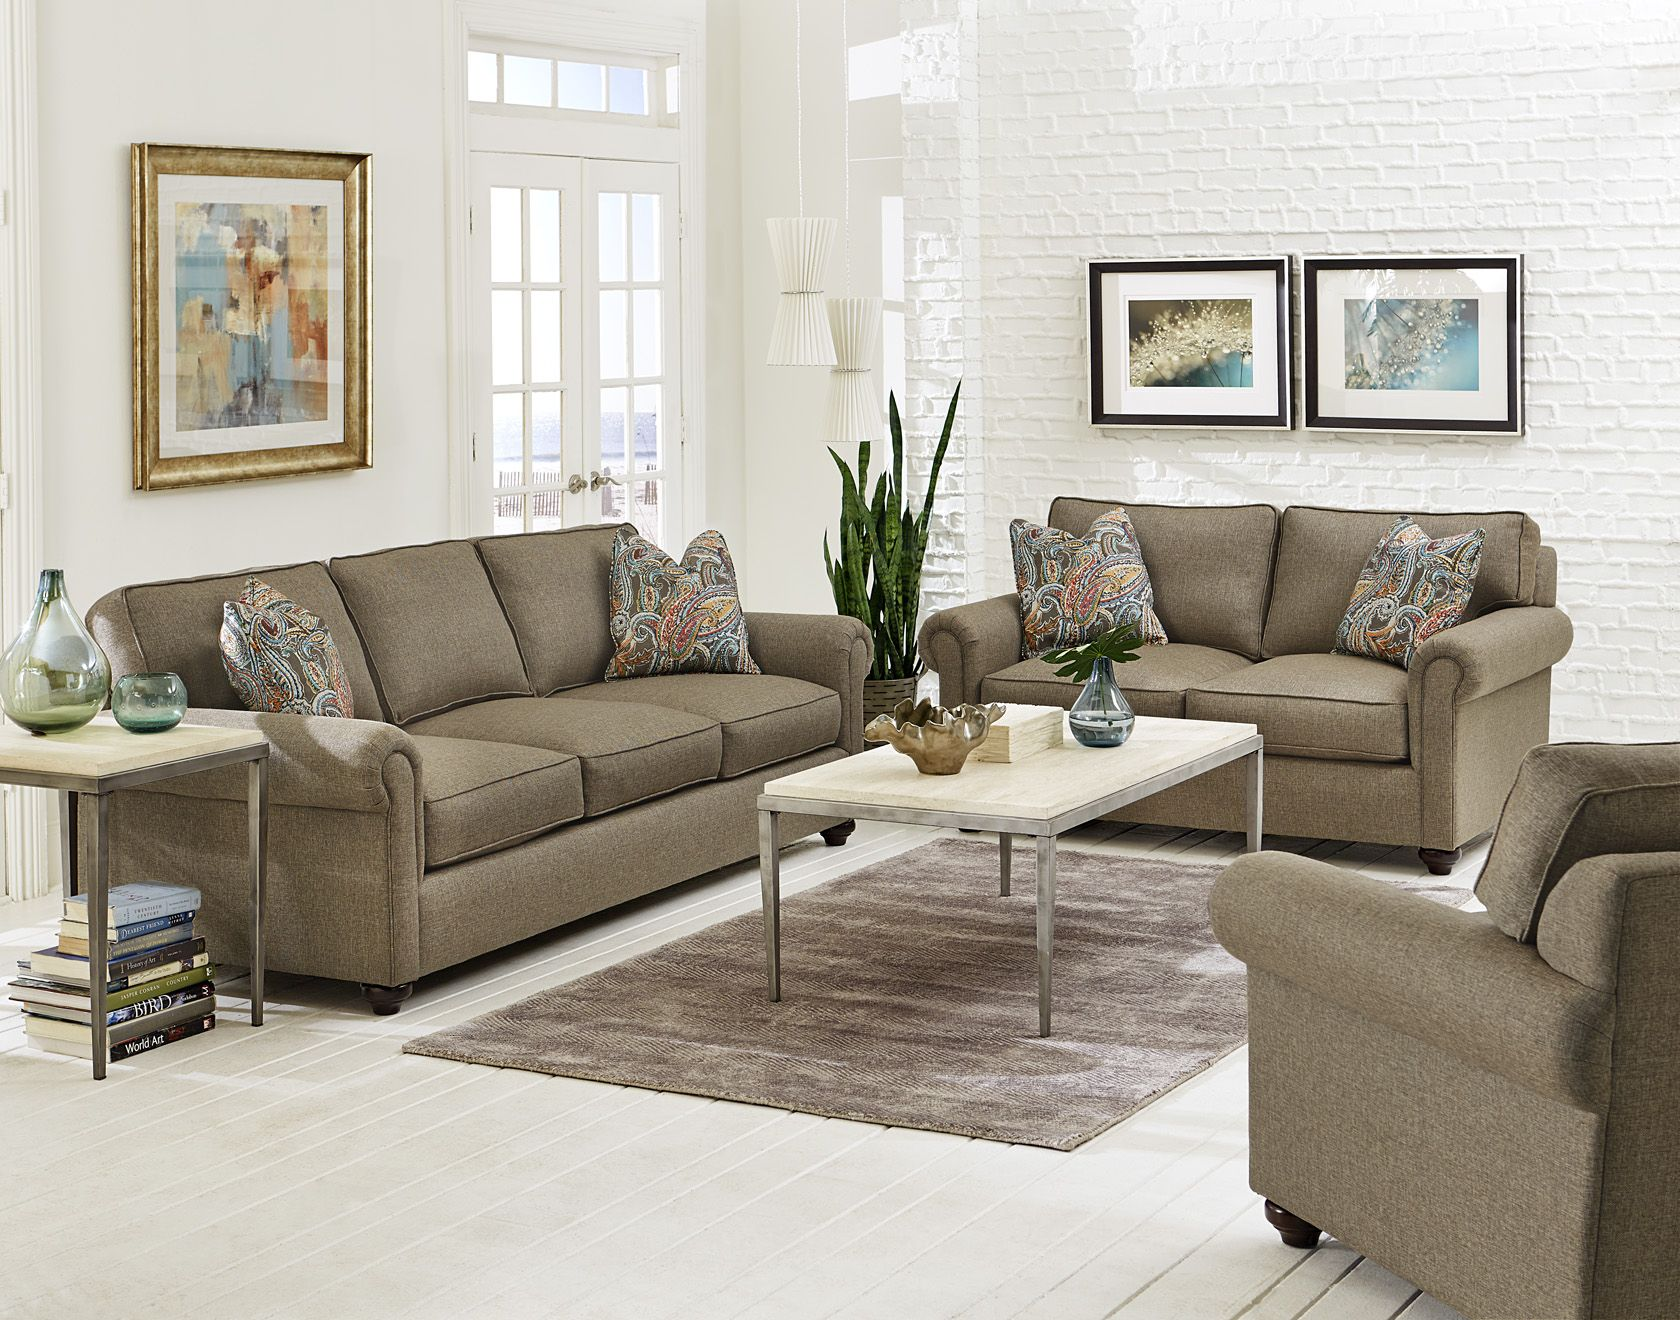 Sumpter Stationary Living Room Group by England at Colder's Furniture and  Appliance